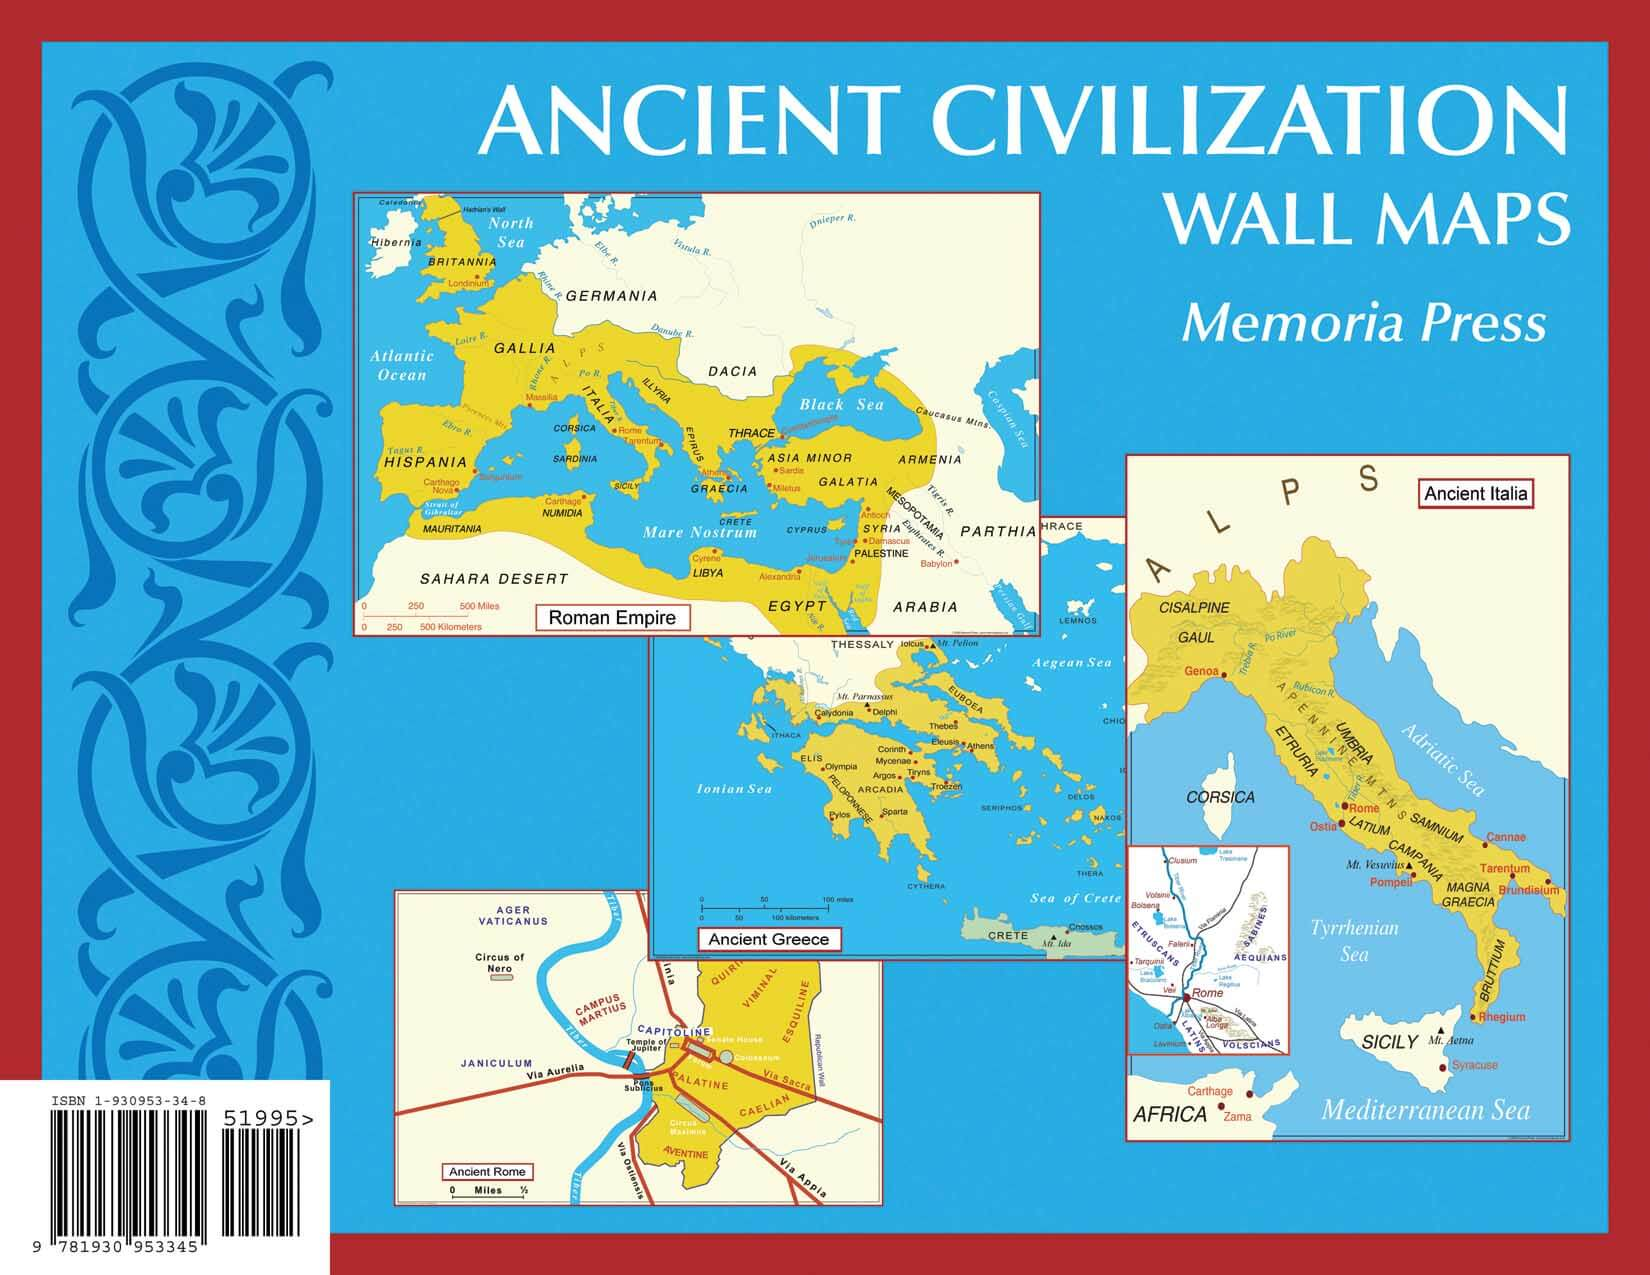 world civilizations Civilization refers to a complex human society, in which people live in groups of settled dwellings comprising citiesearly civilizations developed in many parts of the world, primarily where there was adequate water available.